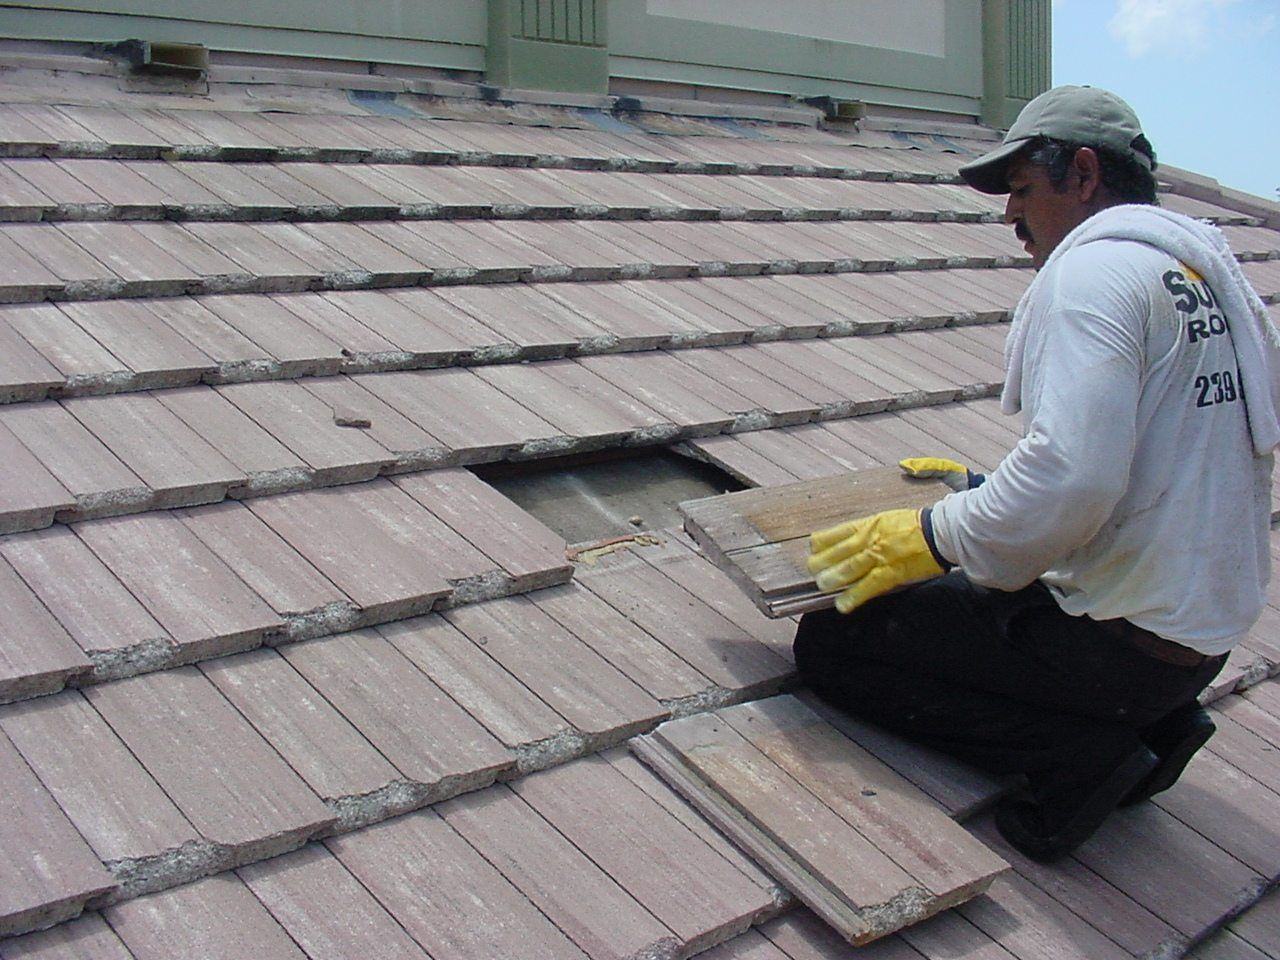 Don T Let Your Home Go To Disarray Here Are 22 Of The Most Important Tips To Maintain Your Home In 2020 Roof Leak Repair Concrete Roof Tiles Clay Roof Tiles